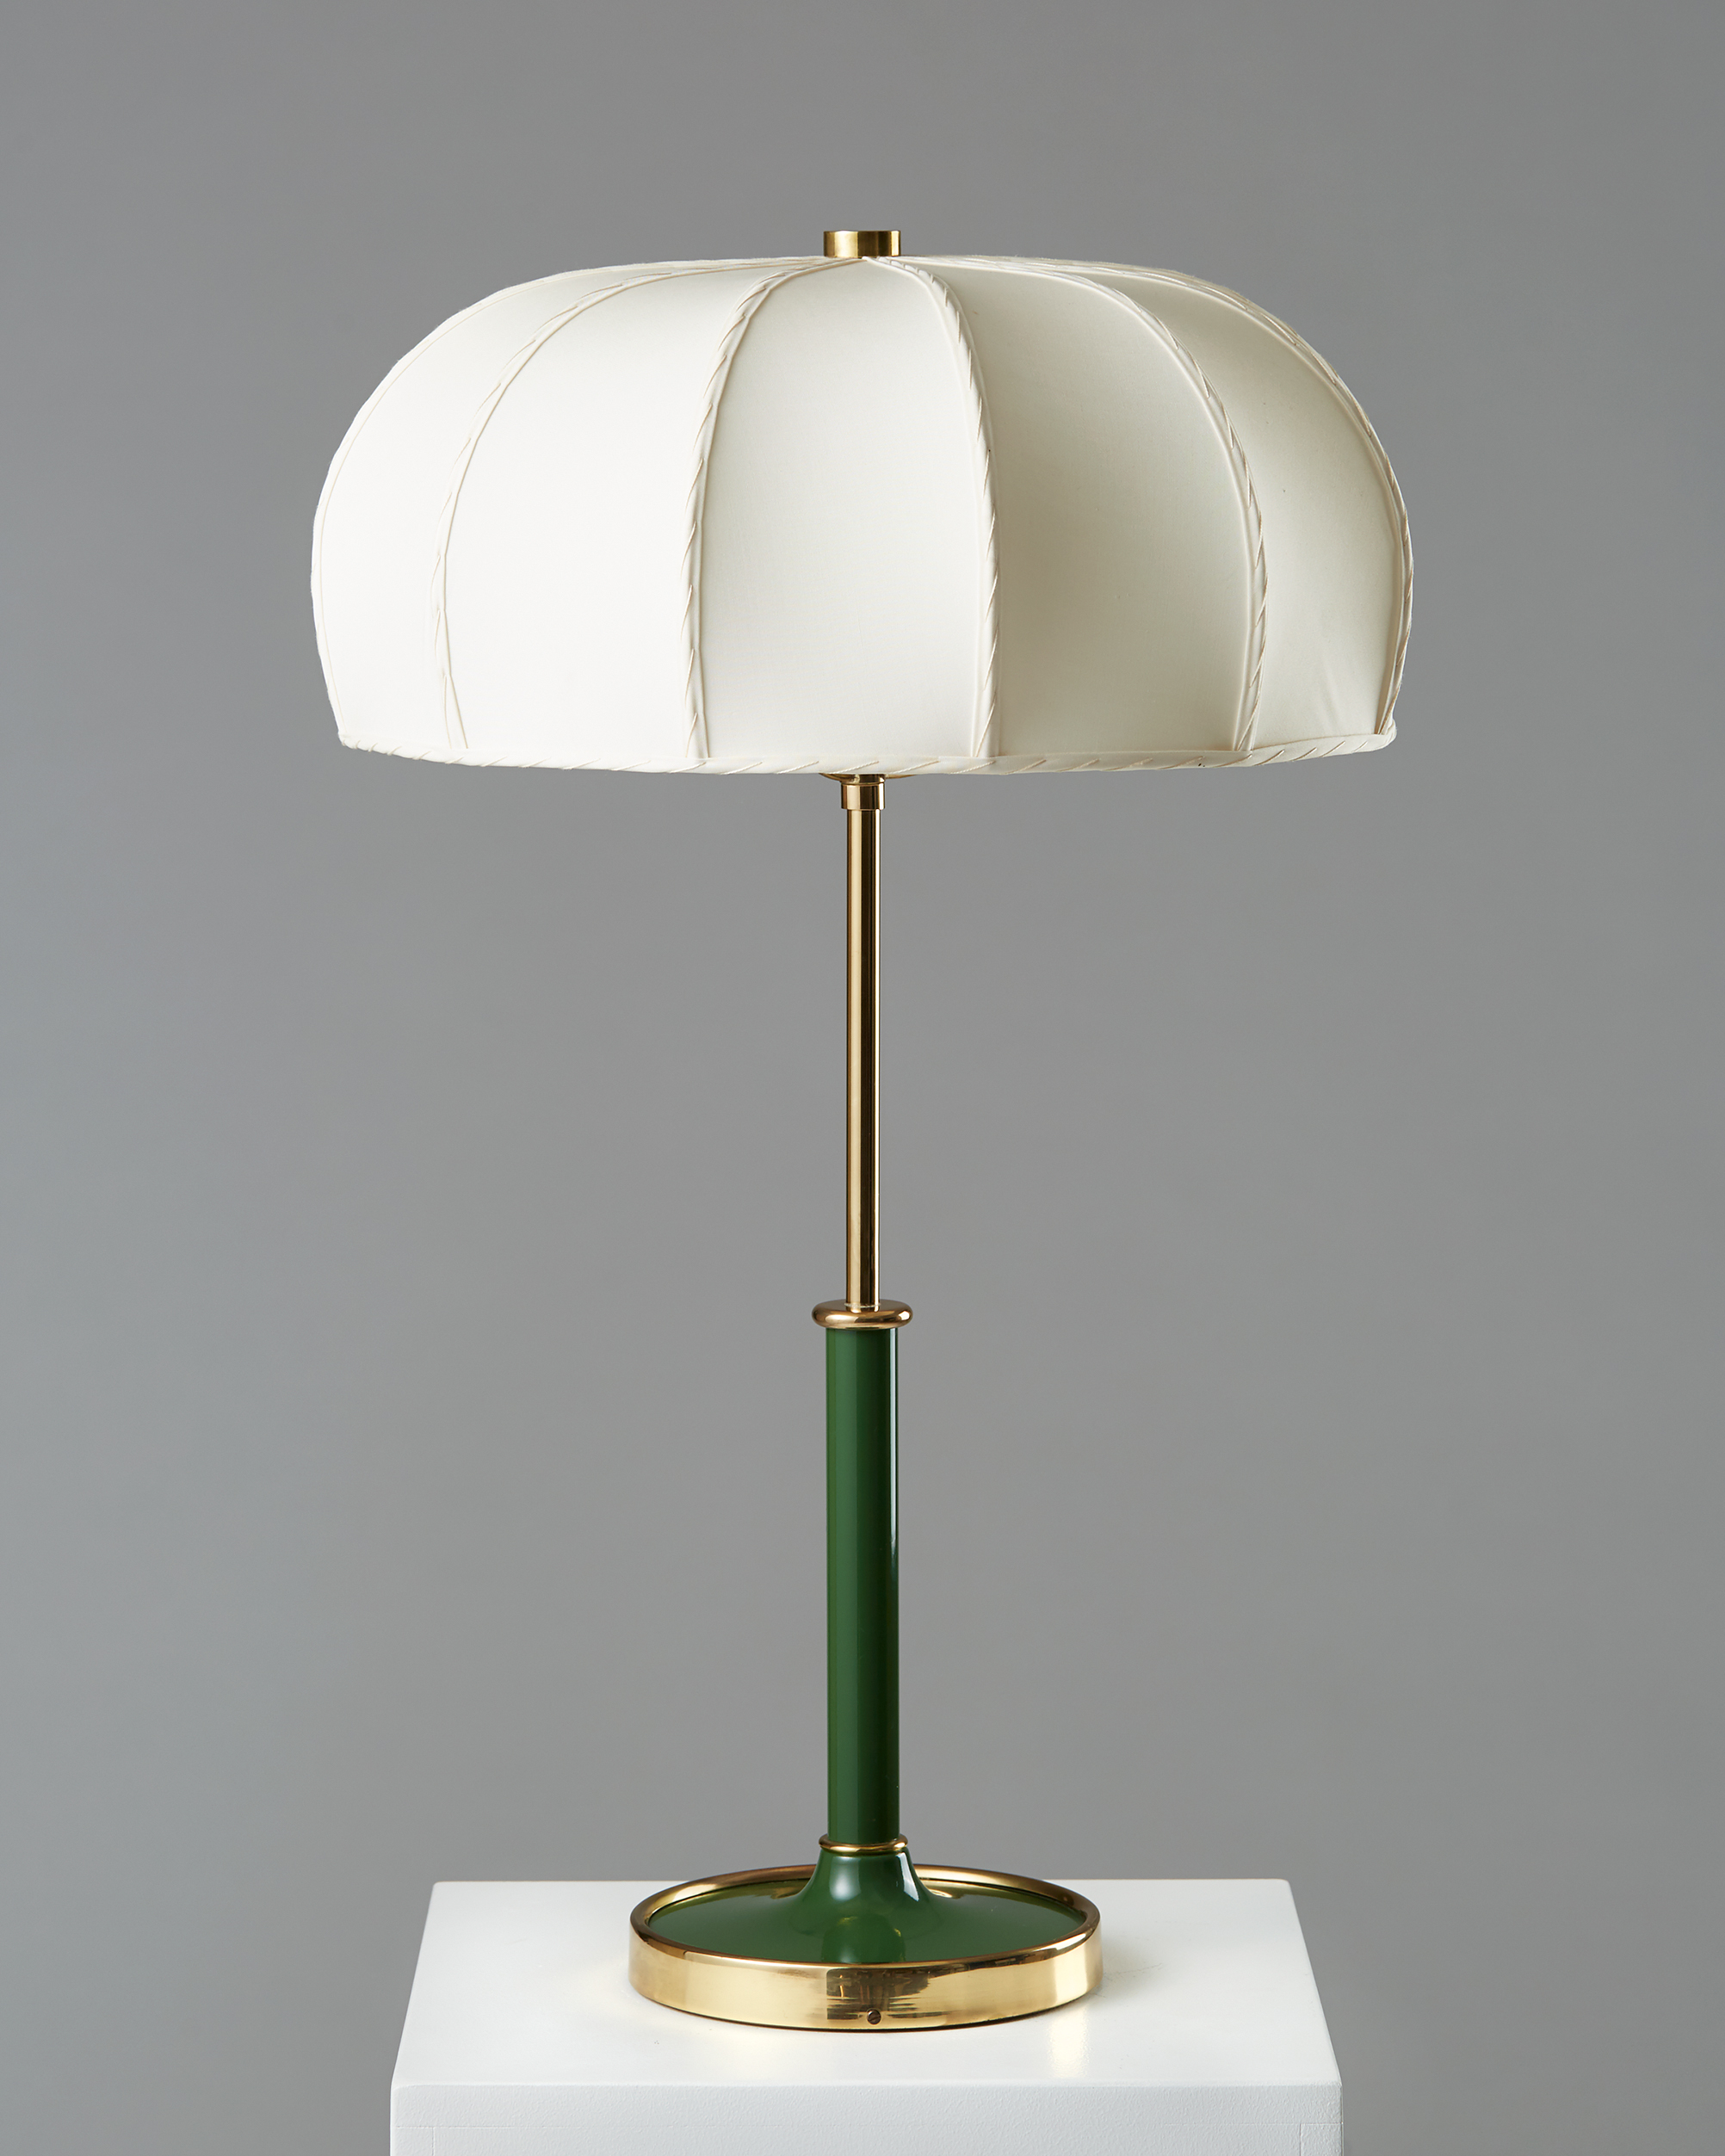 Josef Frank  Table lamp model 2466 Sweden, 1950's Brass and lacquer with fabric shade. 67 x 43 cm